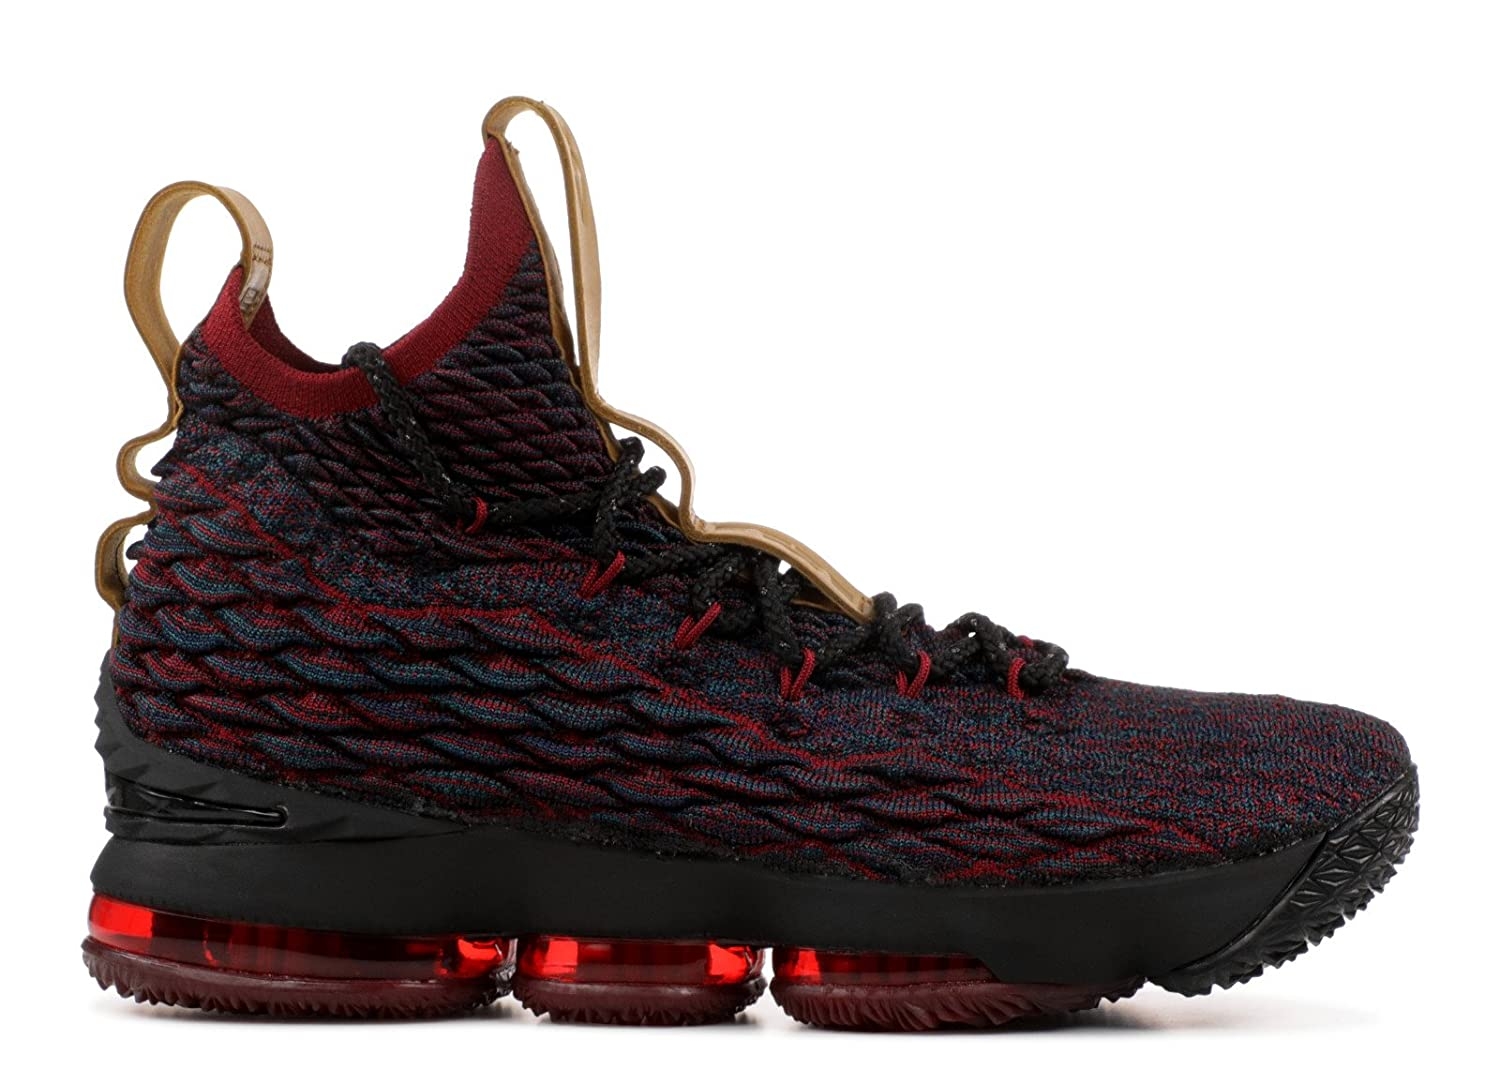 quality design 9cc11 7635d BSTBLL Lebron 15 DK Atomic Teal Black Team Red Mens Basketball Shoes   Amazon.co.uk  Shoes   Bags